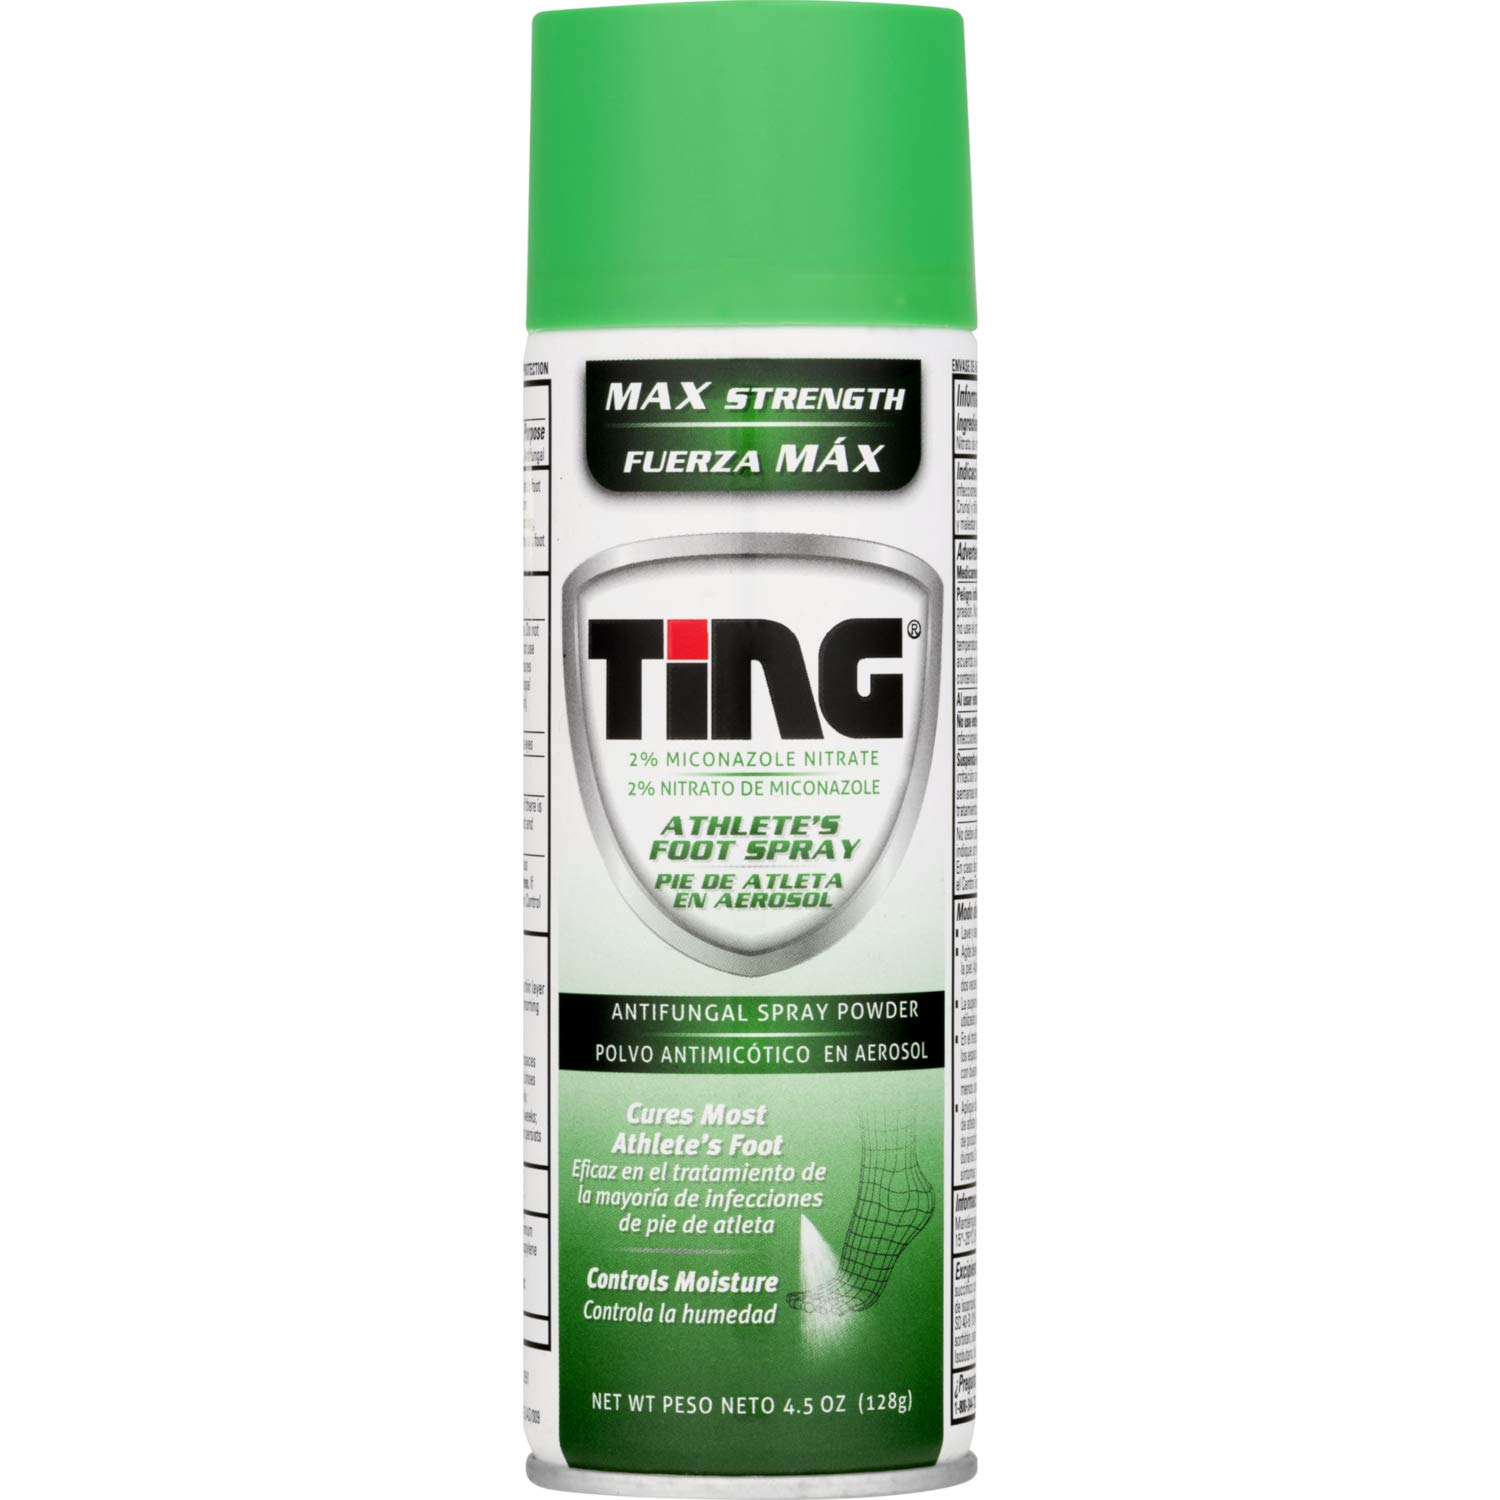 Ting Max Strength Athlete's Foot Spray, 4.5 Ounces each (Value Pack of 7) by Ting Ting